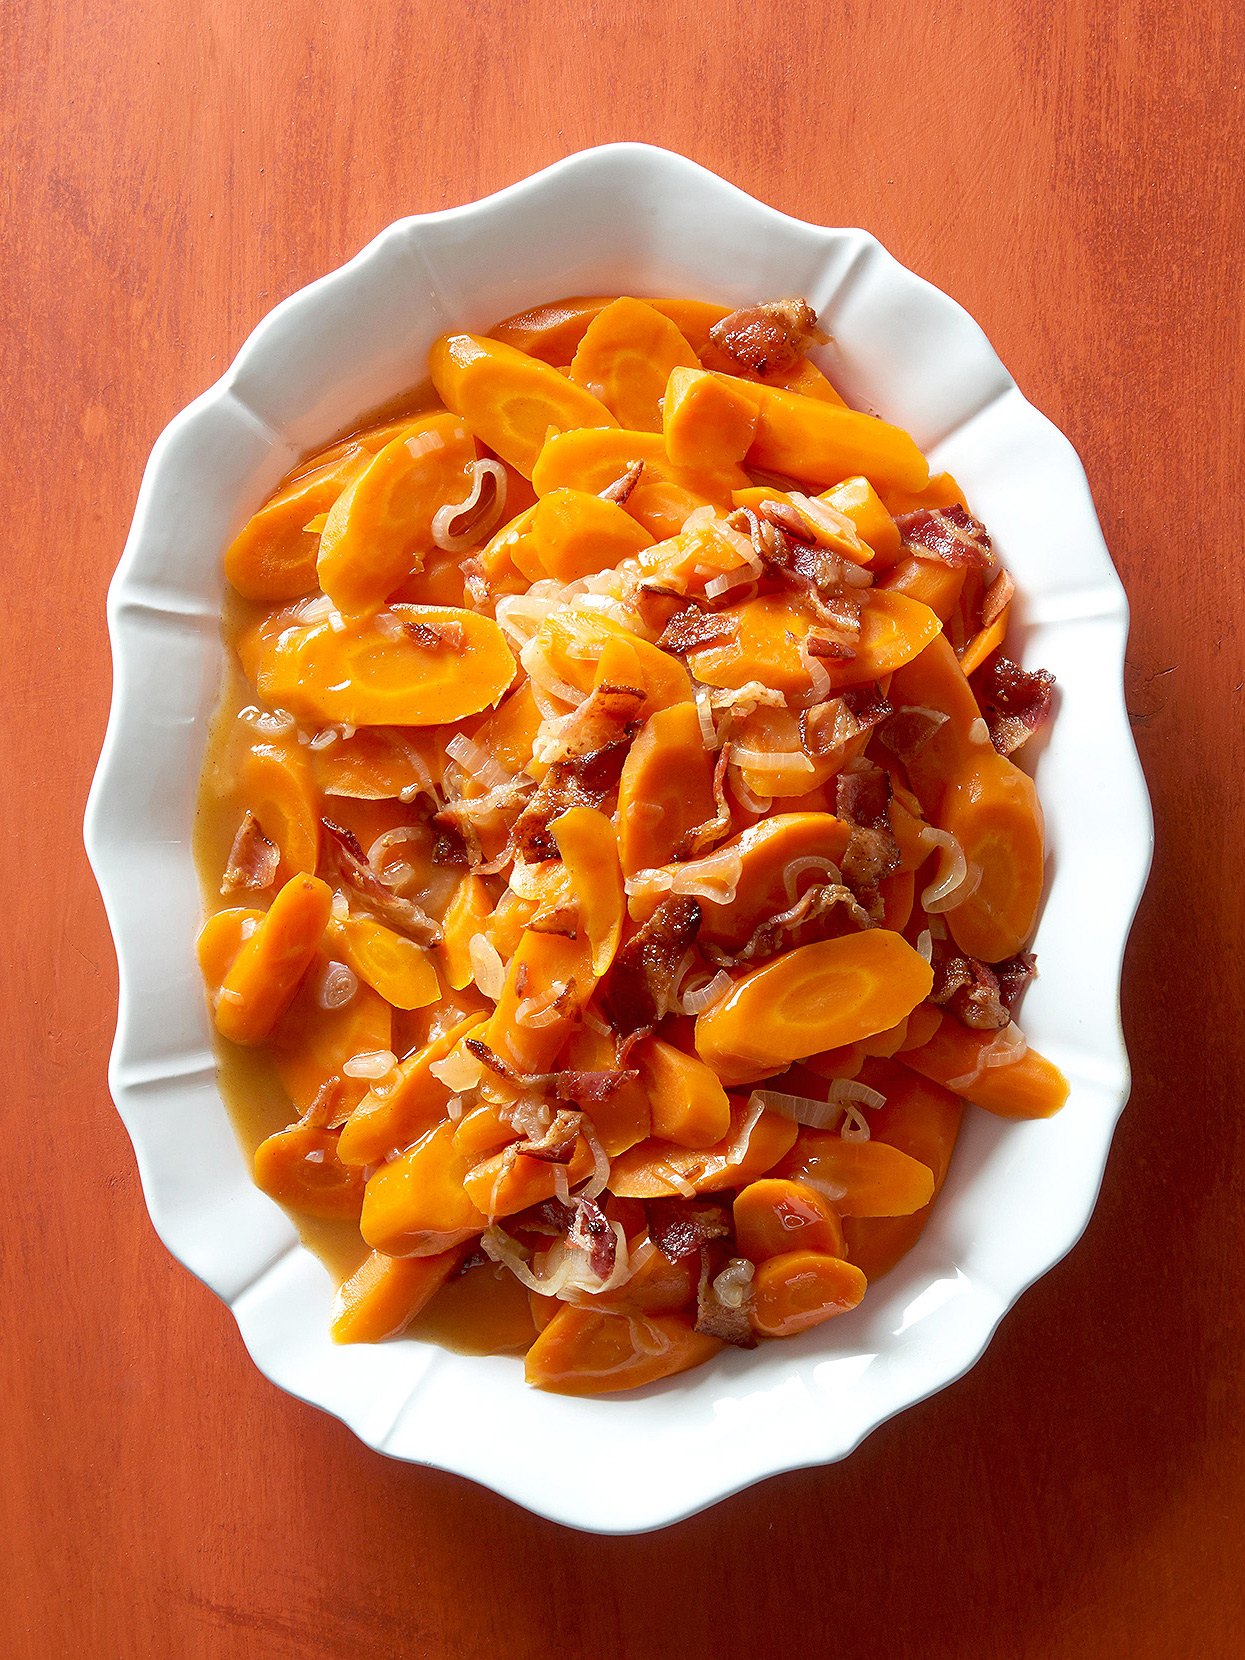 Apple-Infused Carrots with Bacon